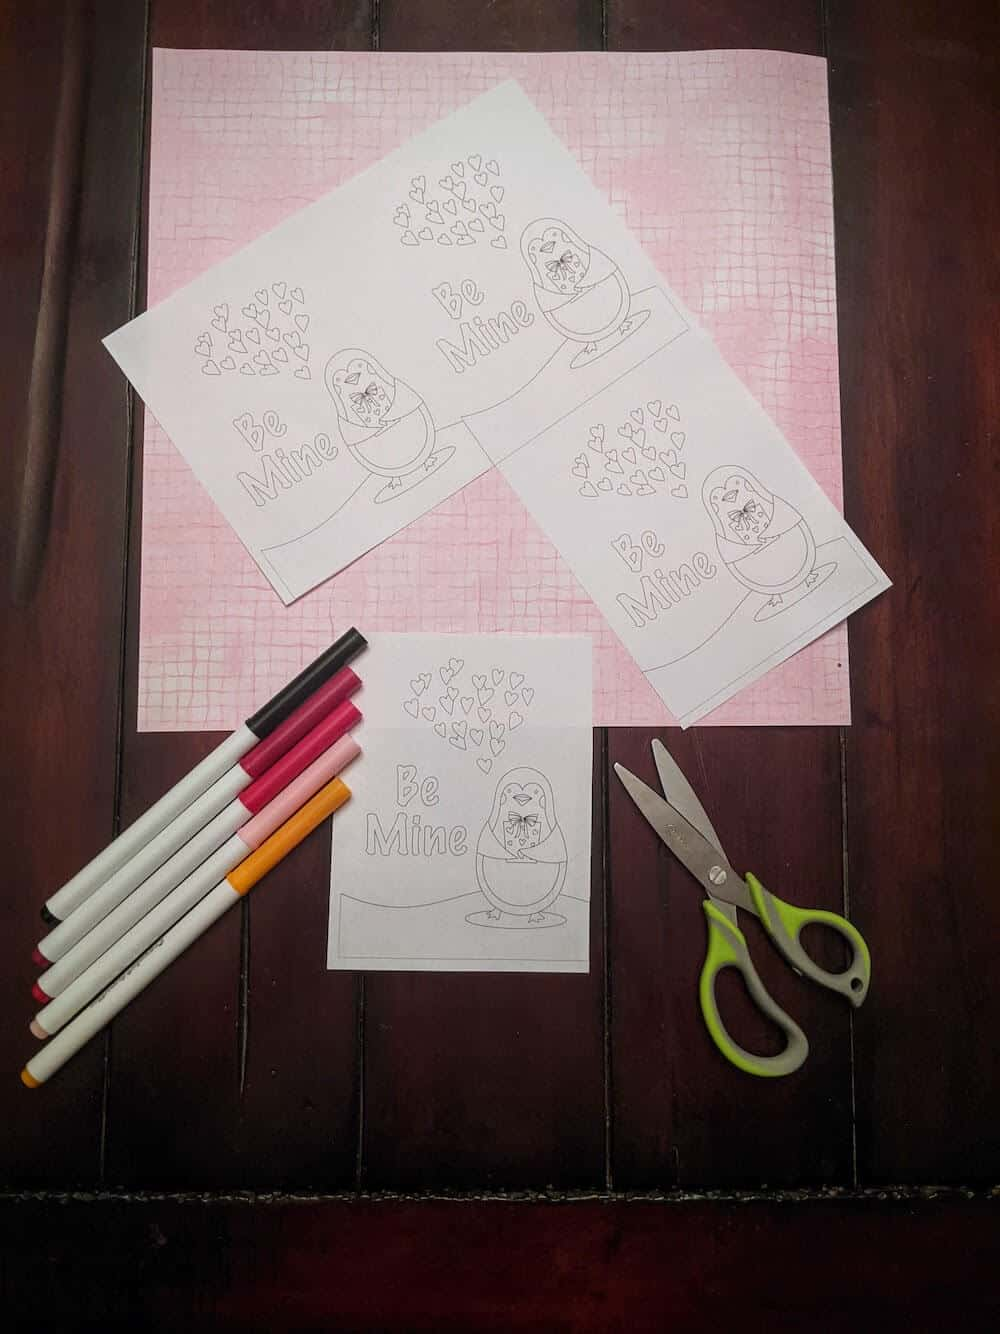 Printed penguin Valentine's cards with papers, scissors, and markers ready for DIY project